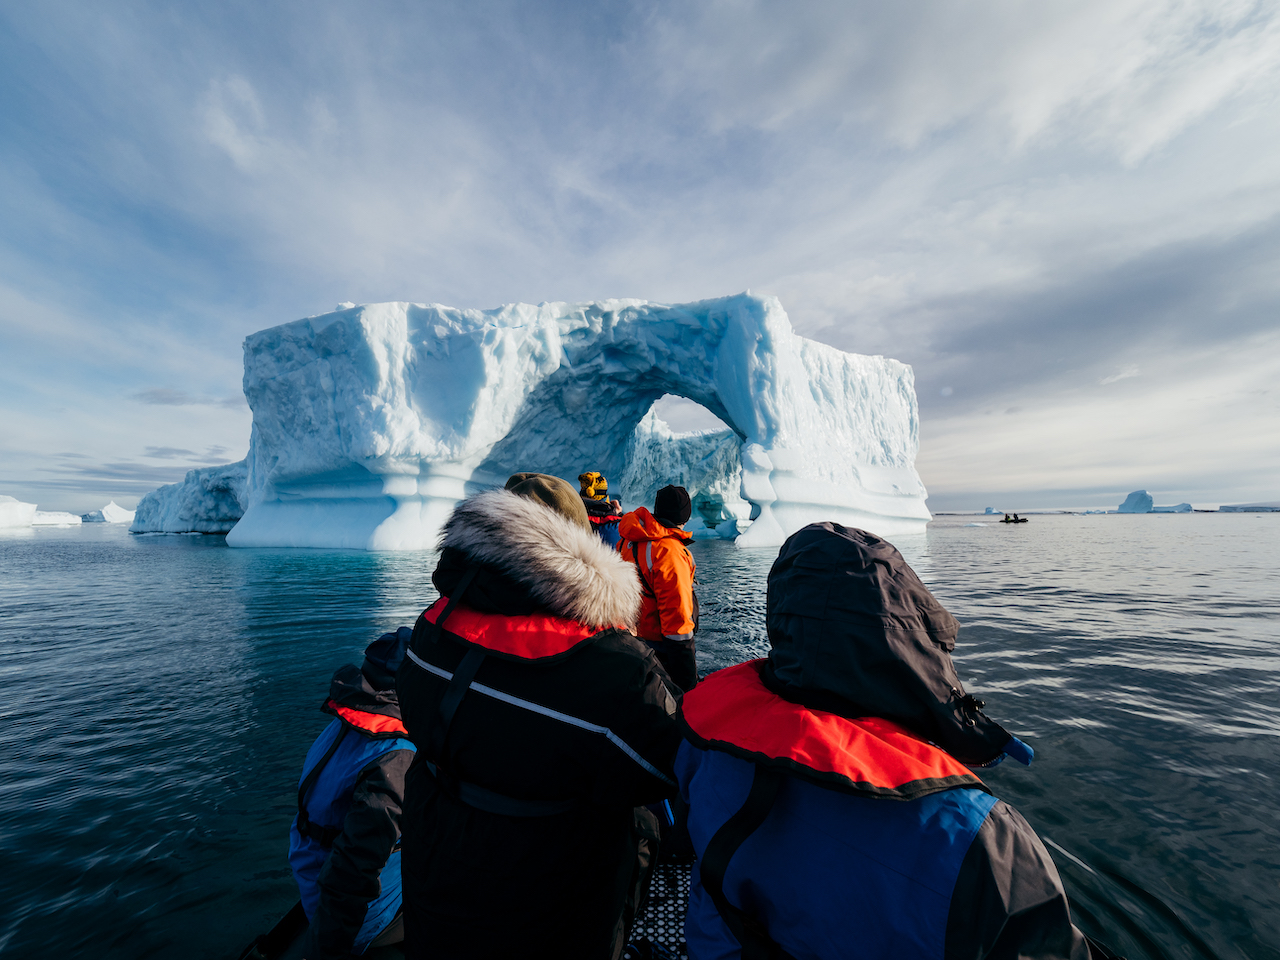 Australia's award-winning adventure cruise company Aurora Expeditions has created an updated Health & Safety Program in preparation for the resumption of expedition cruising.